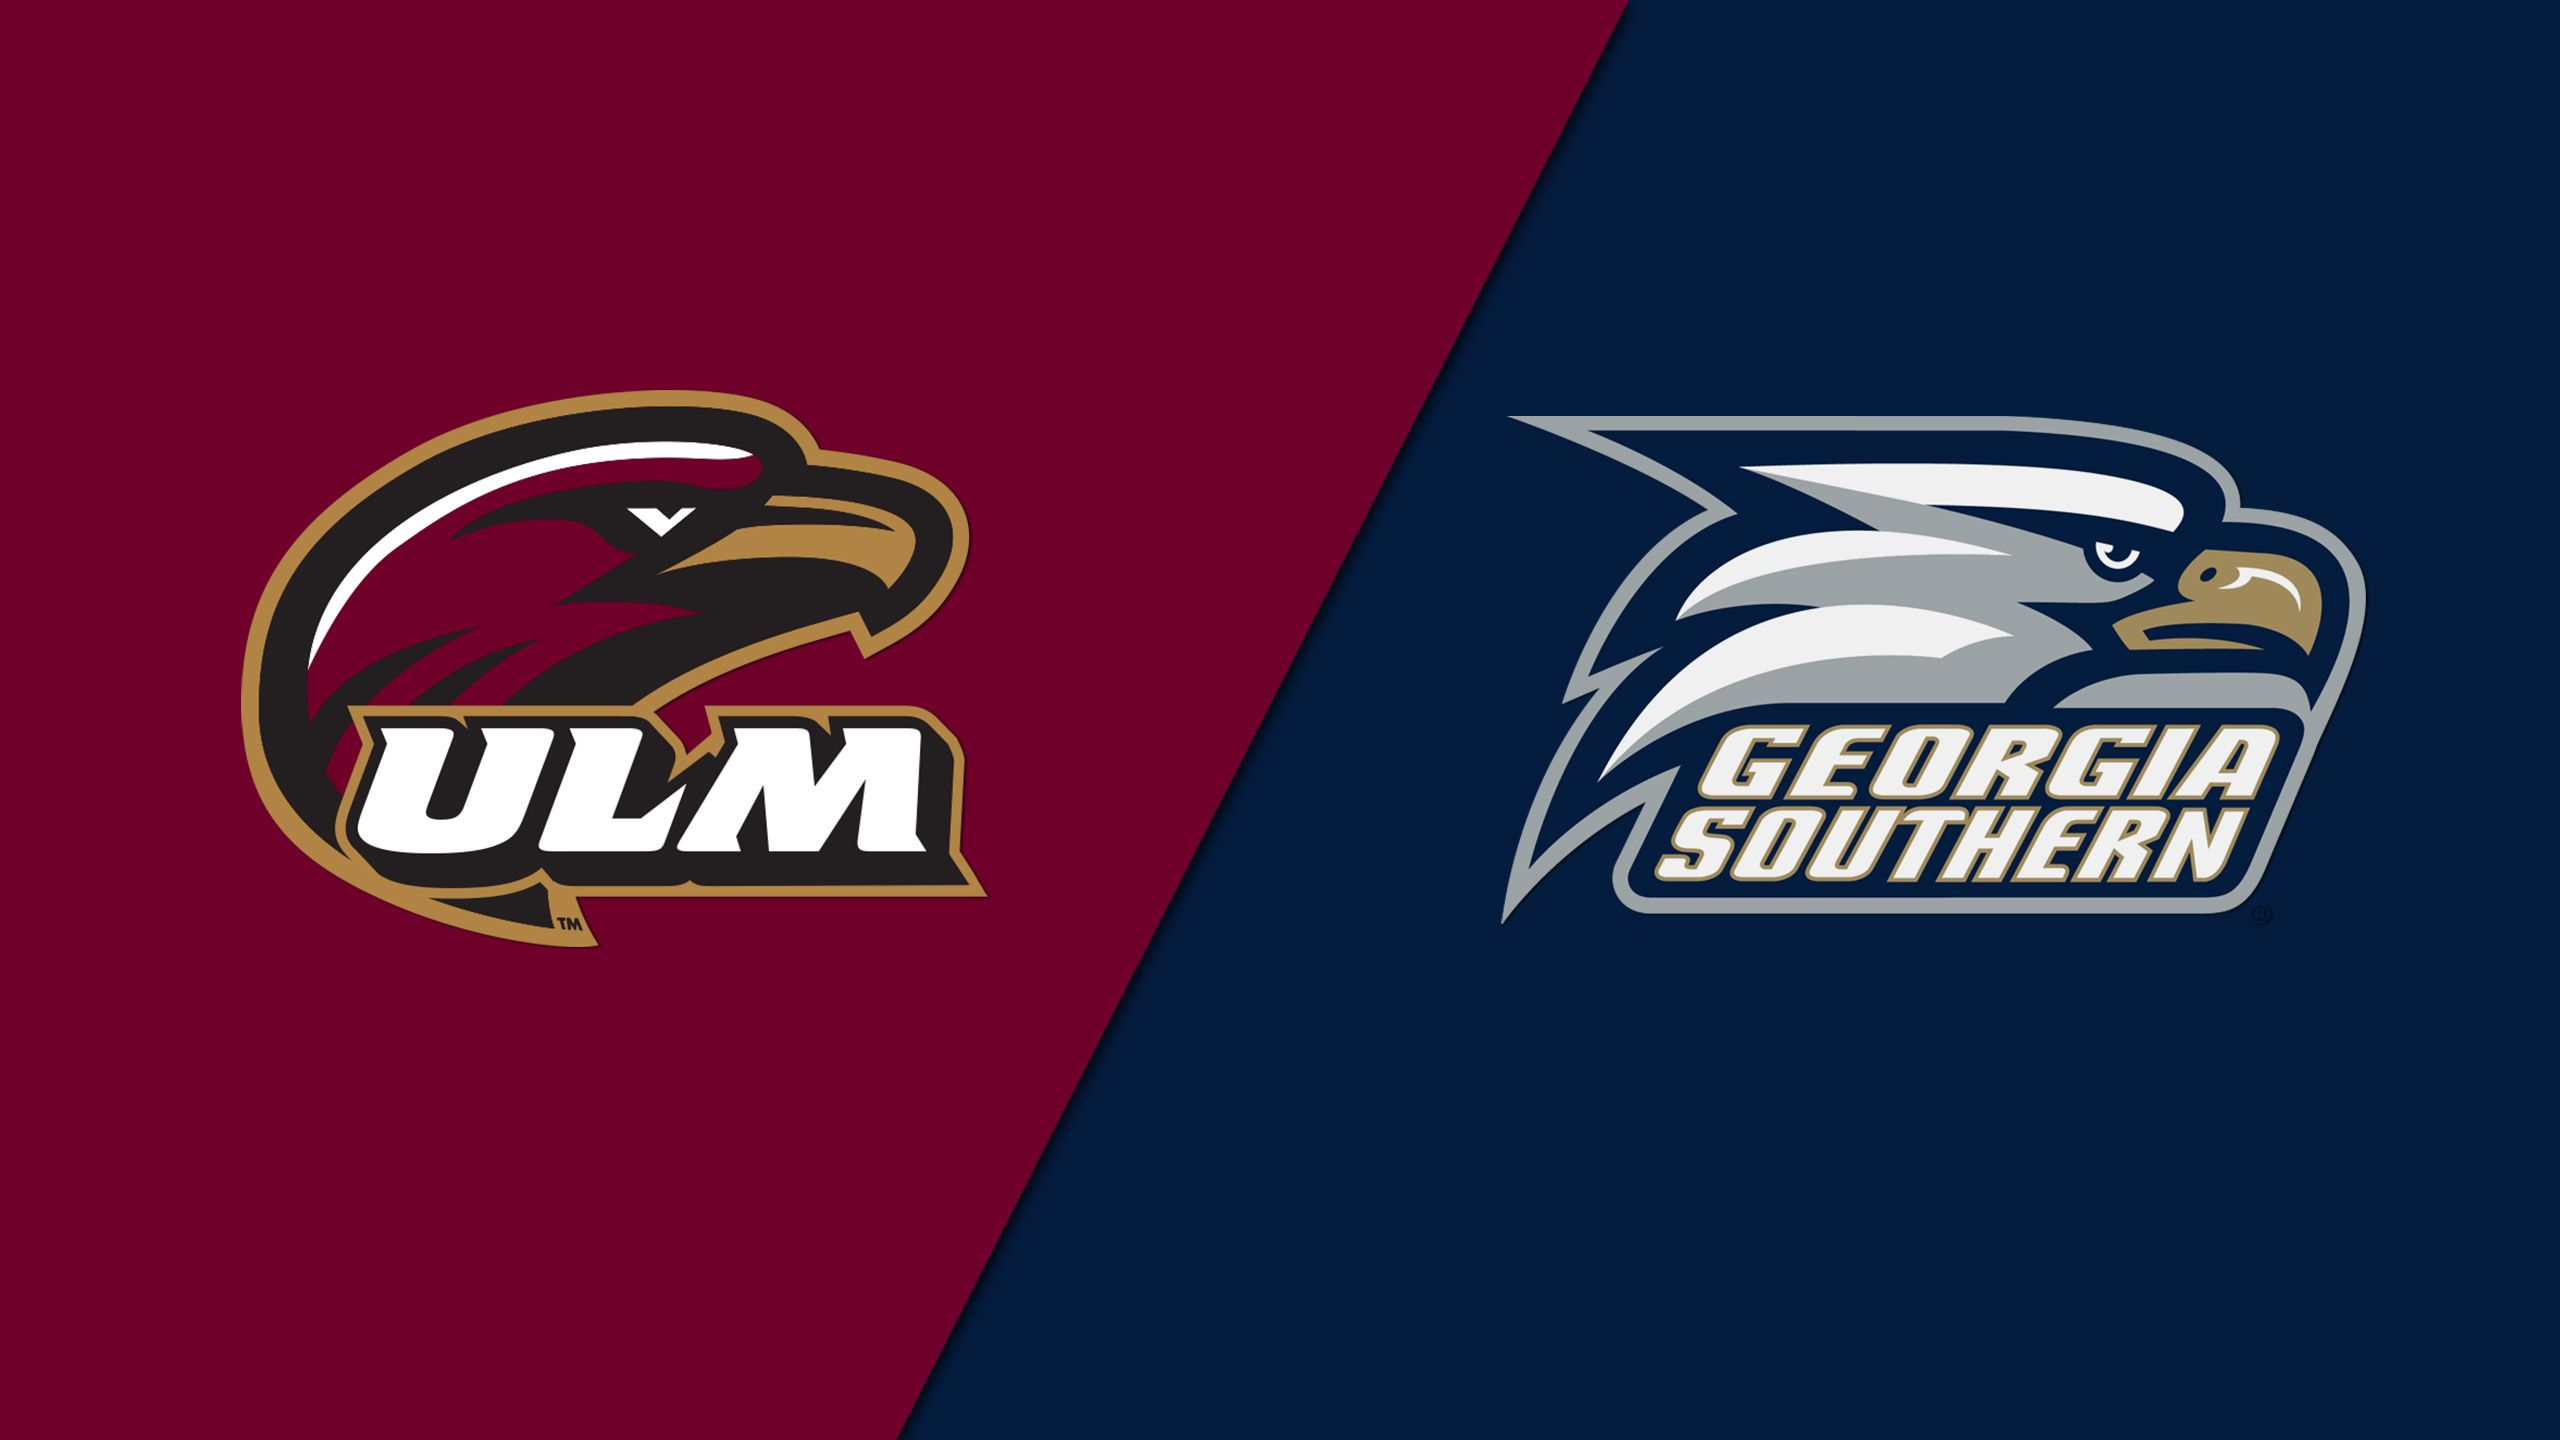 Louisiana-Monroe vs. Georgia Southern (Softball)